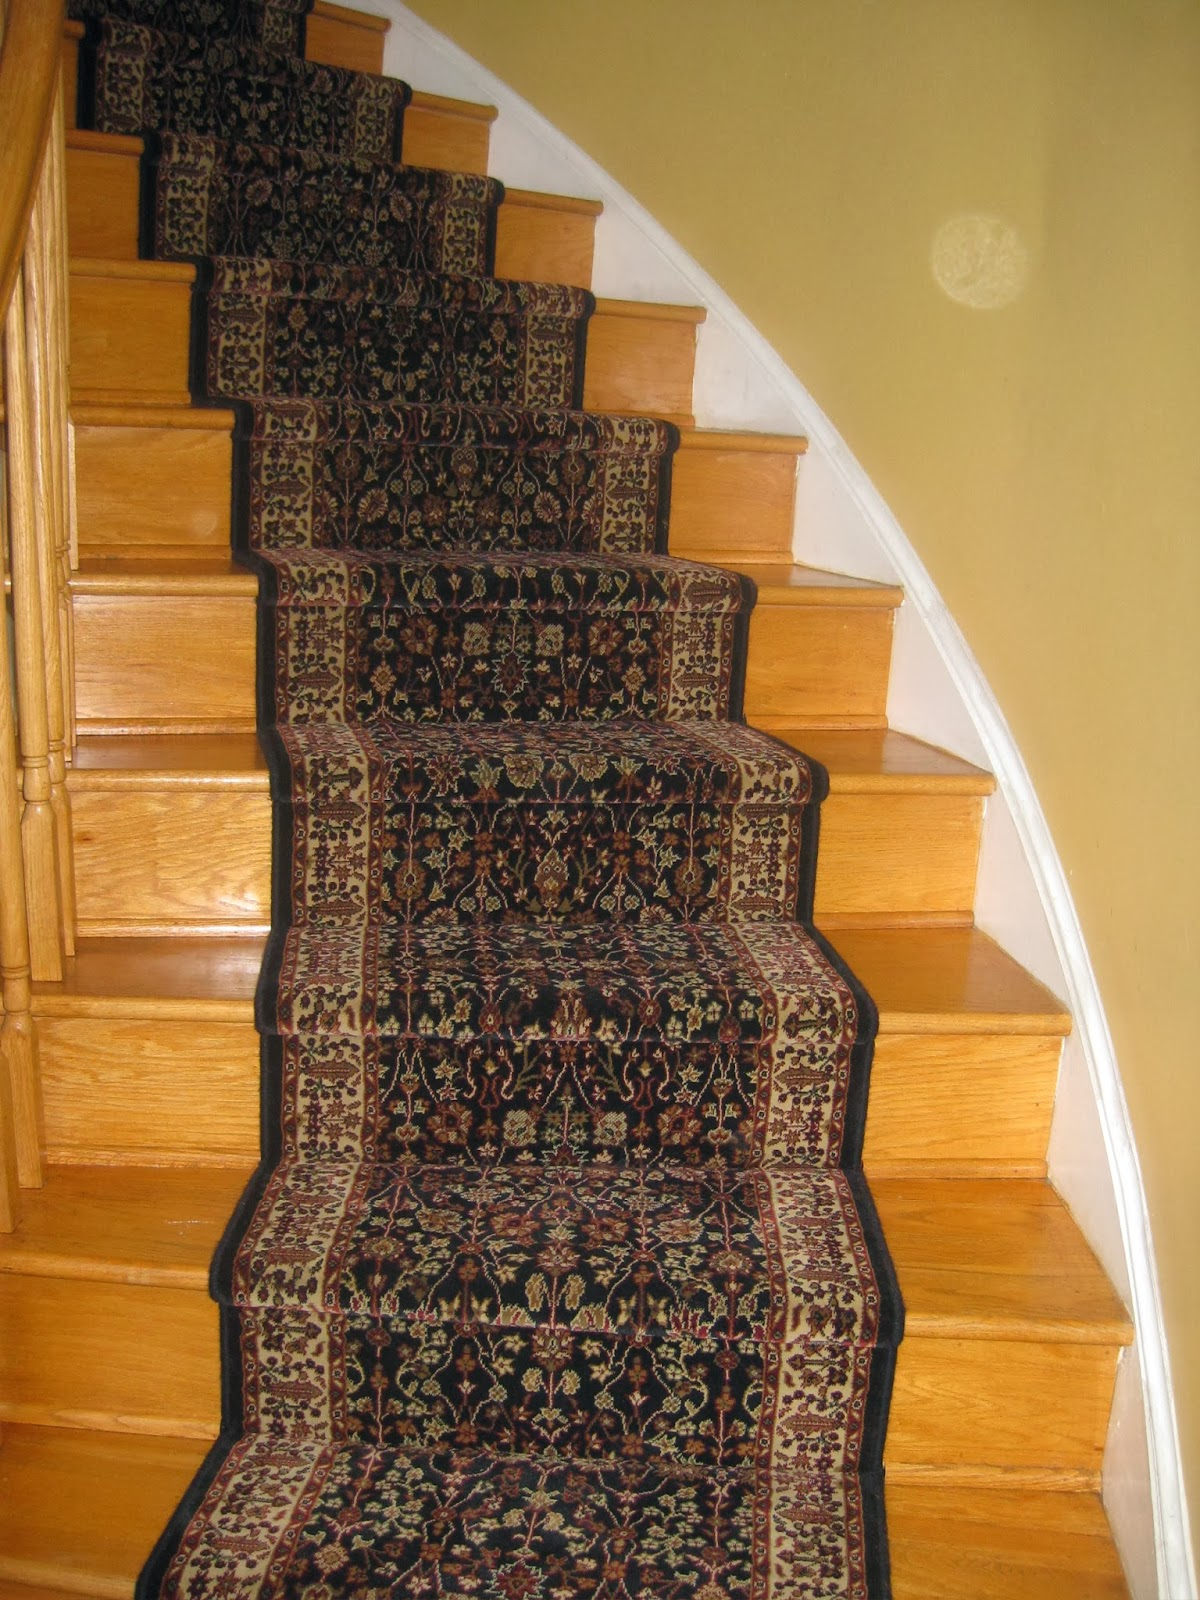 Without A Stair Runner, A Wooden Staircase Is Much More Slippery And Easy  To Fall On. By Increasing The Coefficient Of Friction, Stair Runners Make  Your ...